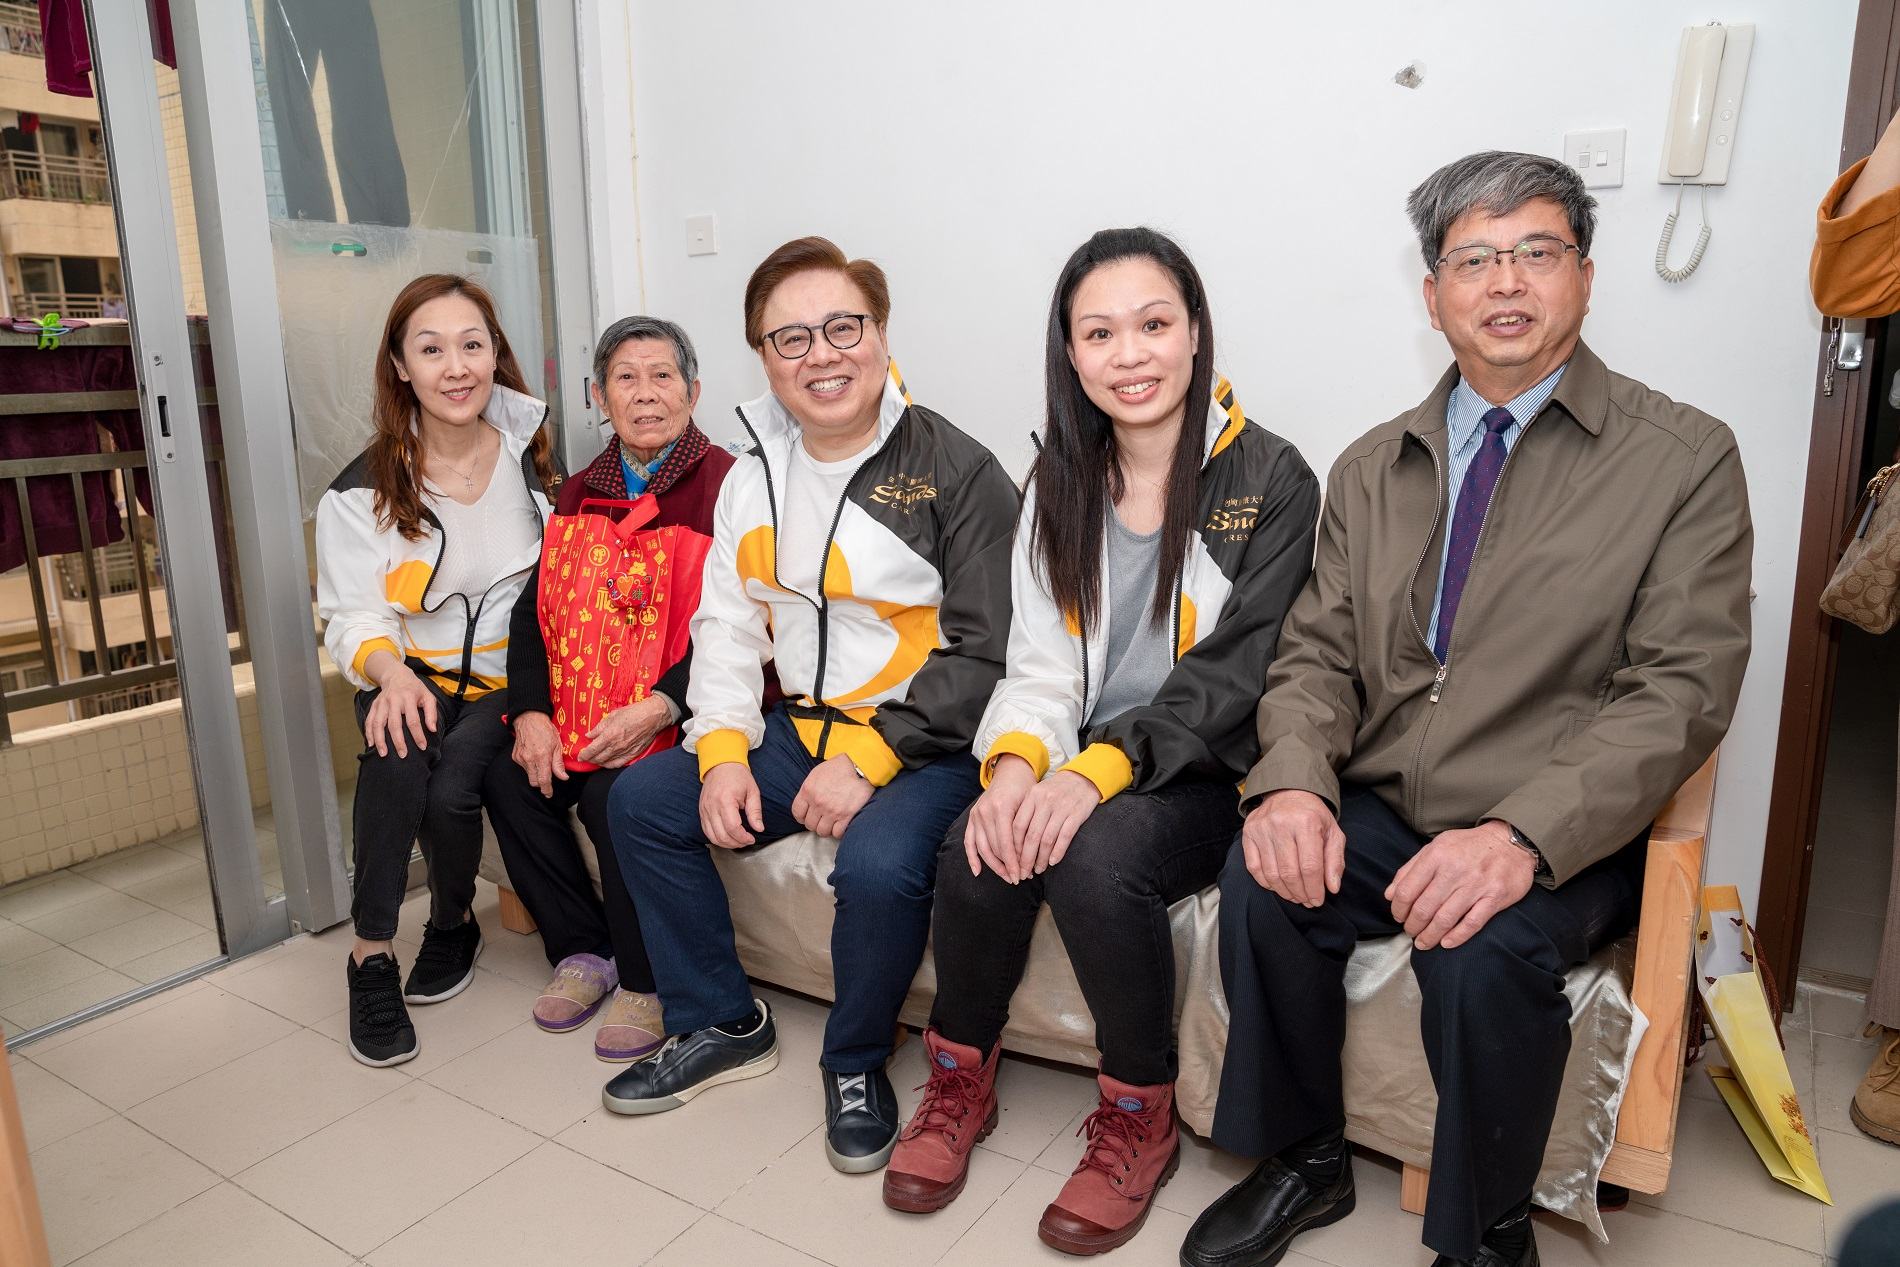 Dr. Wang Yingwei, Liang Qingqiu and the Elderly Living Alone